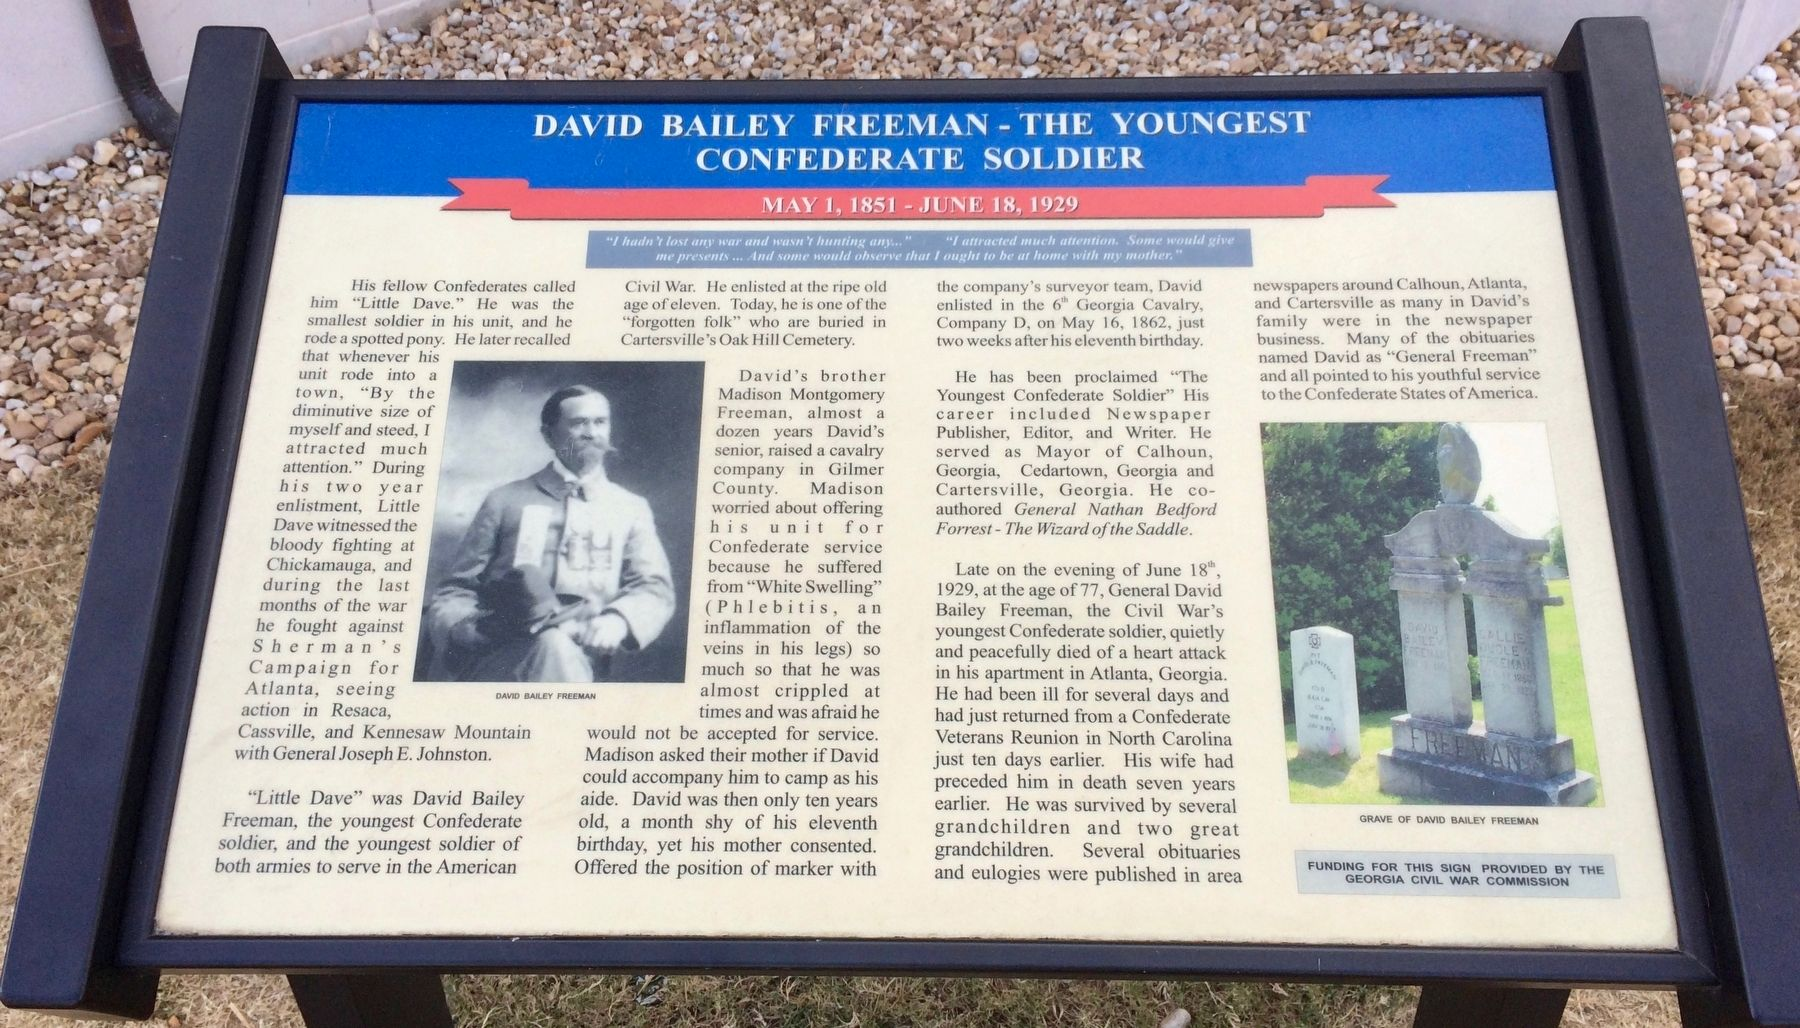 David Bailey Freeman - The Youngest Confederate Soldier Marker image. Click for full size.